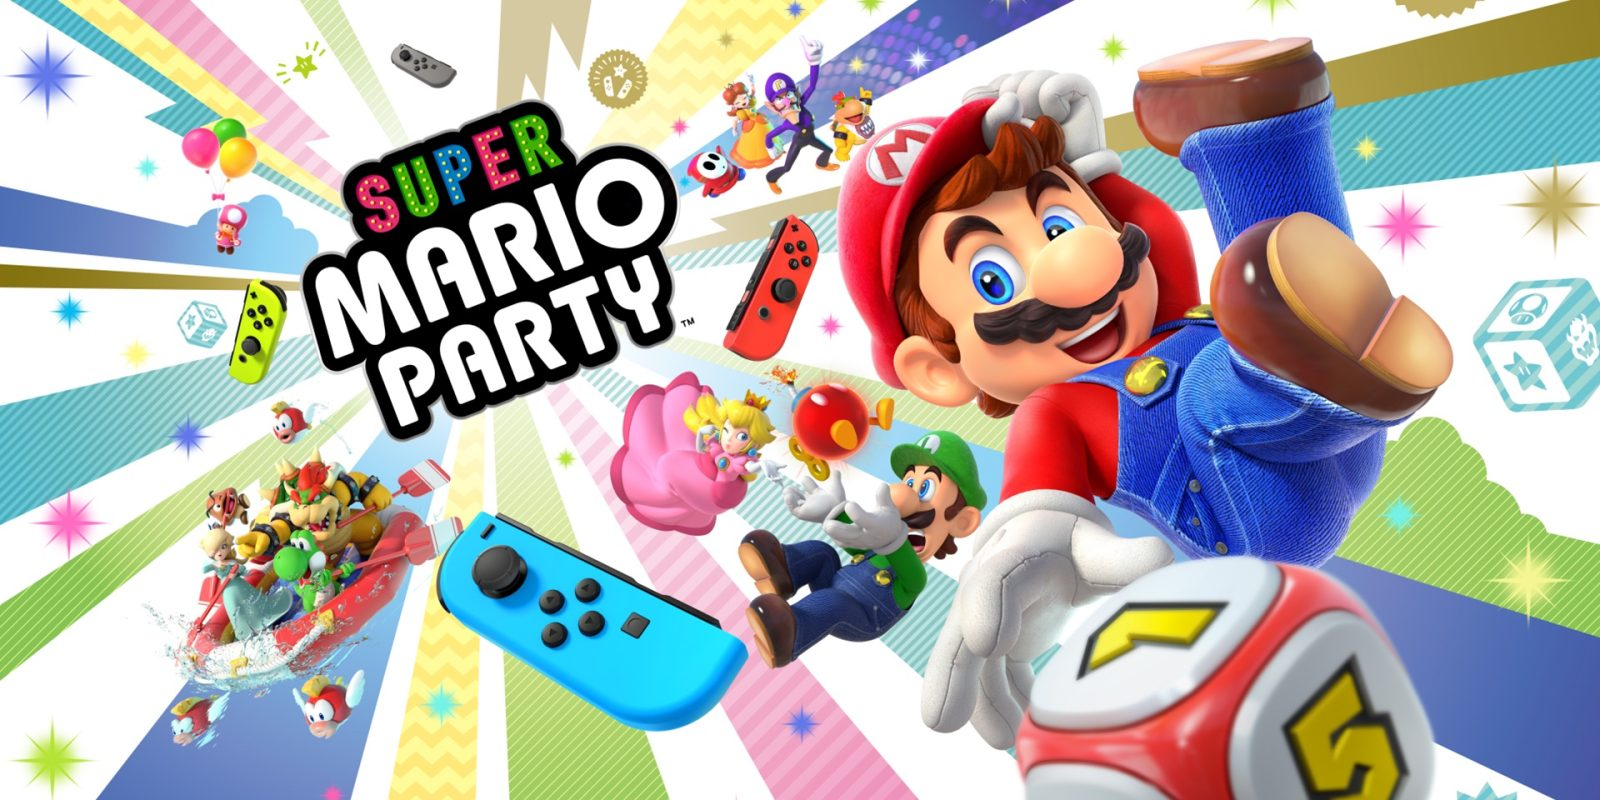 Today's Best Game Deals: Super Mario Party $40, Stardew Valley $12, more